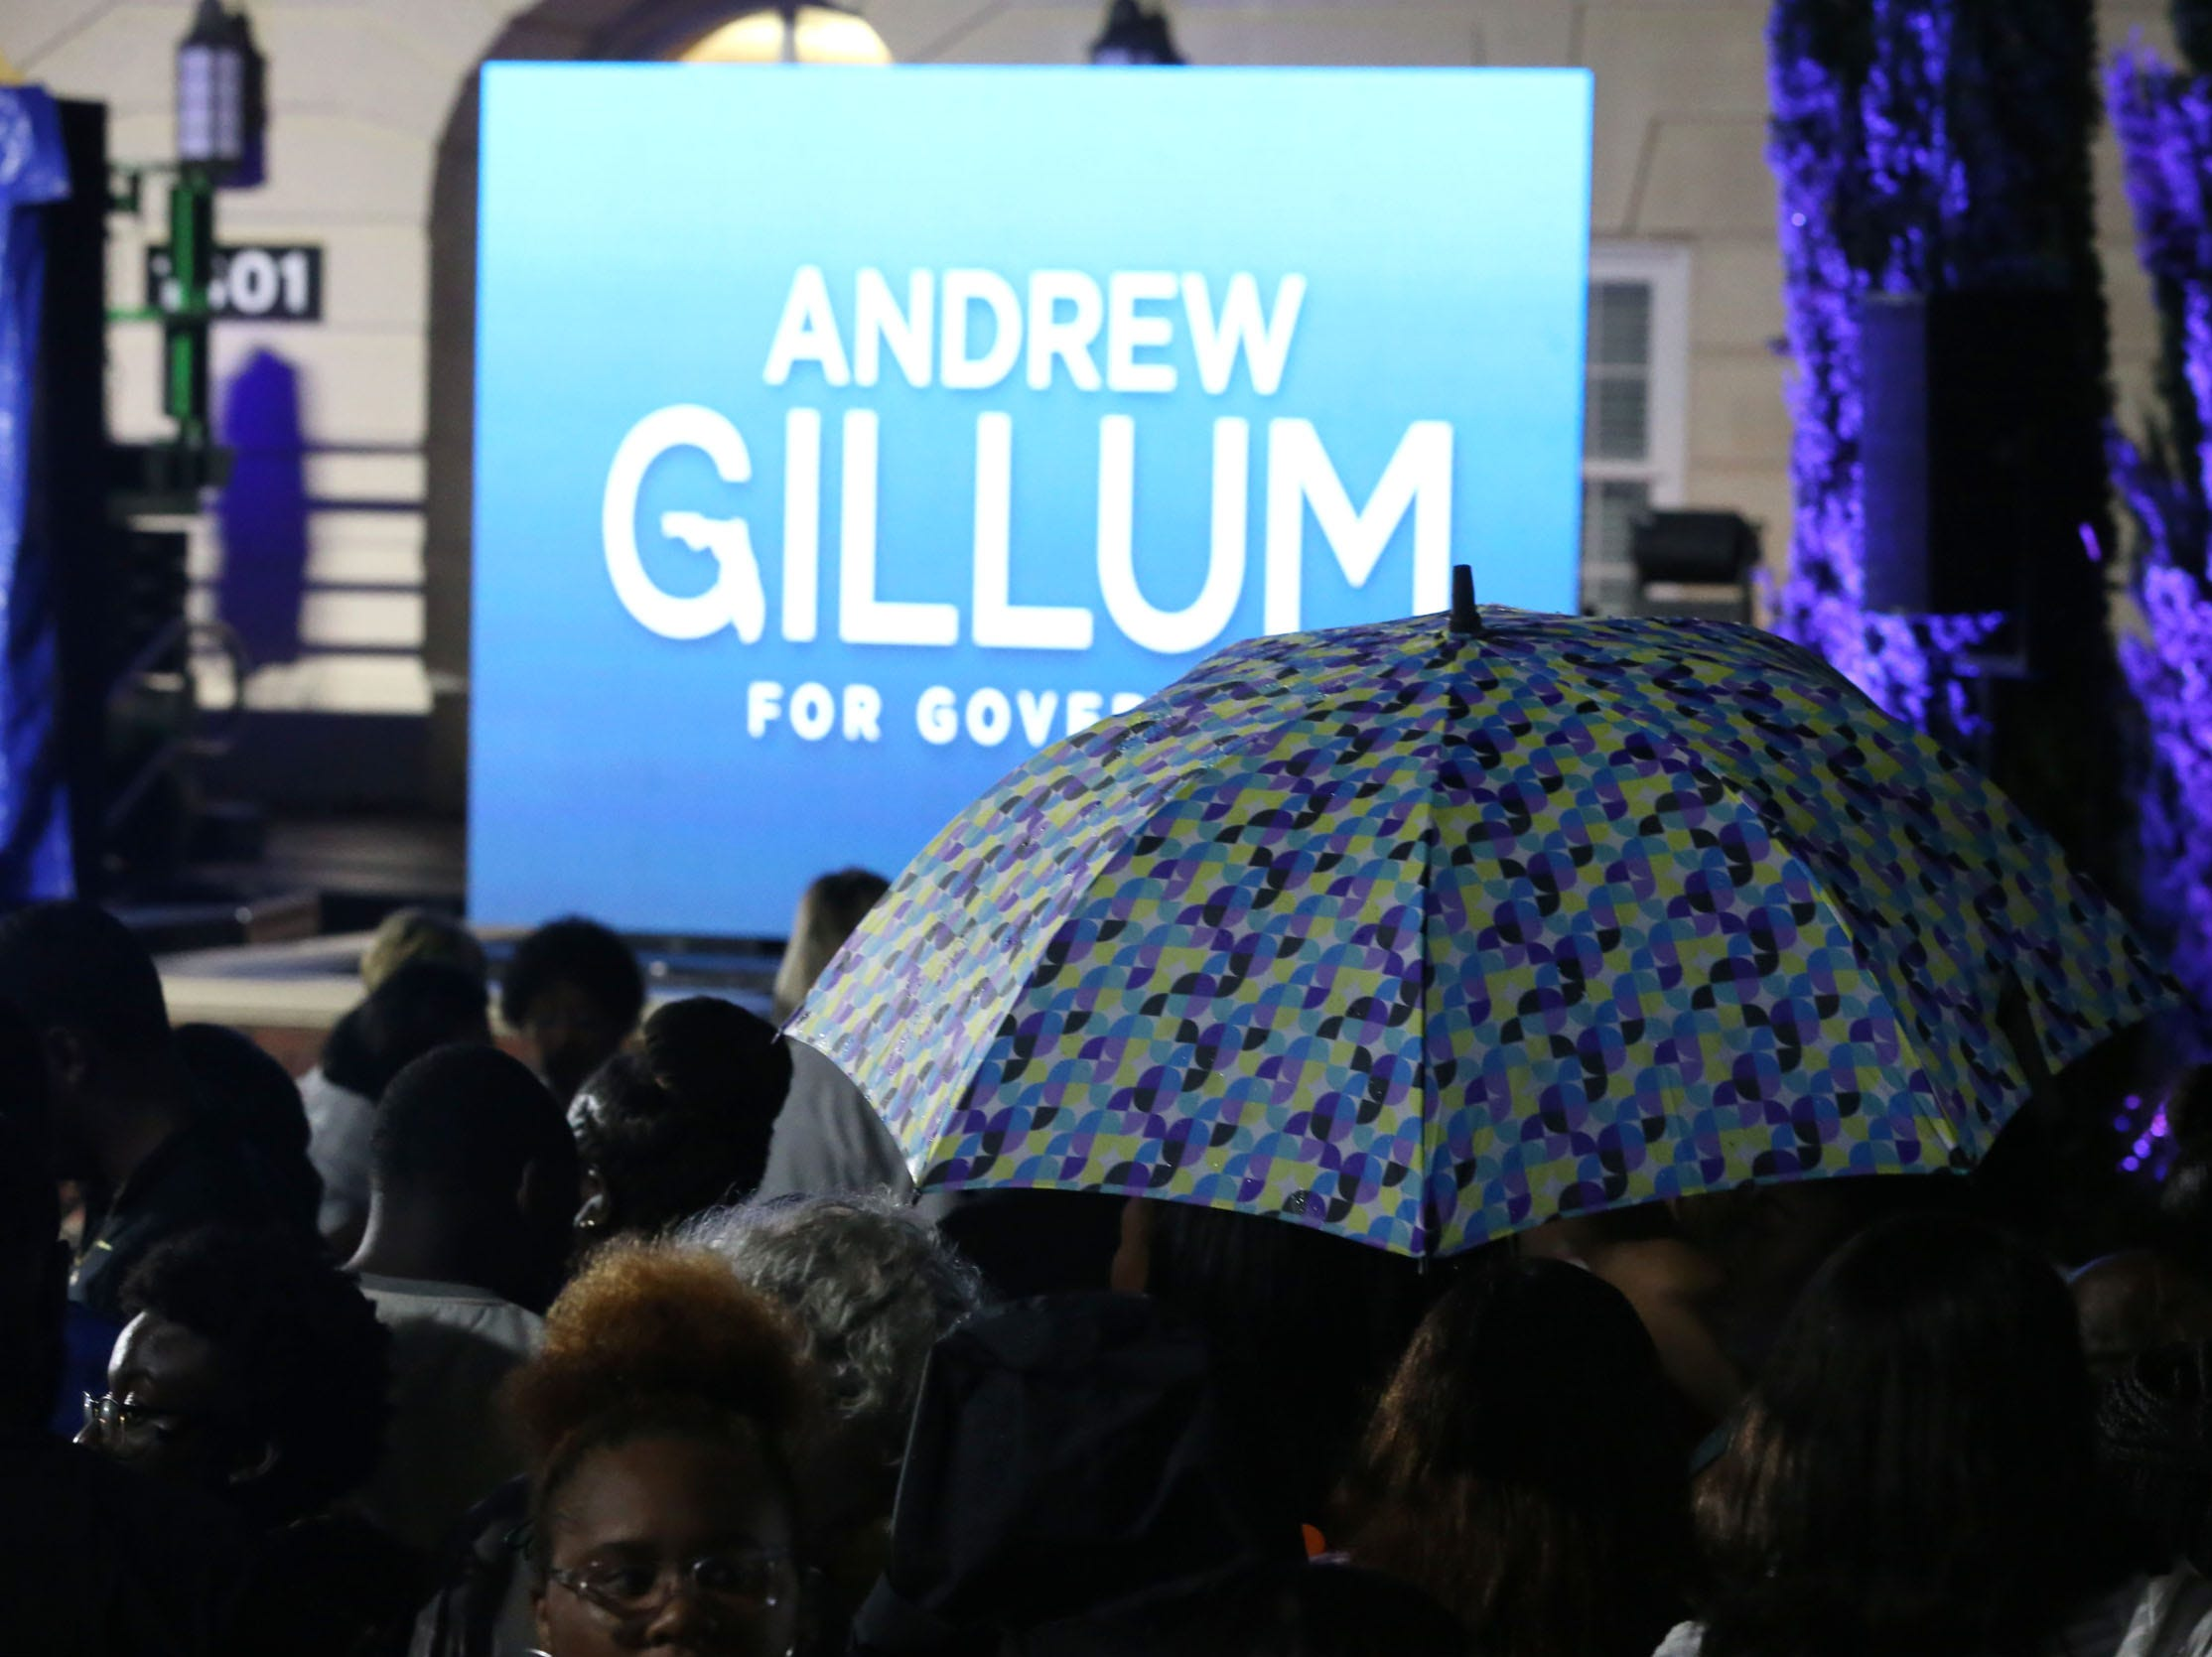 A rainy start at Andrew Gillum's watch party outside Lee Hall on the Florida A&M campus, on Election night, did not stop the crowd from showing up to show support for Gillum, Tuesday, Nov. 6, 2018.